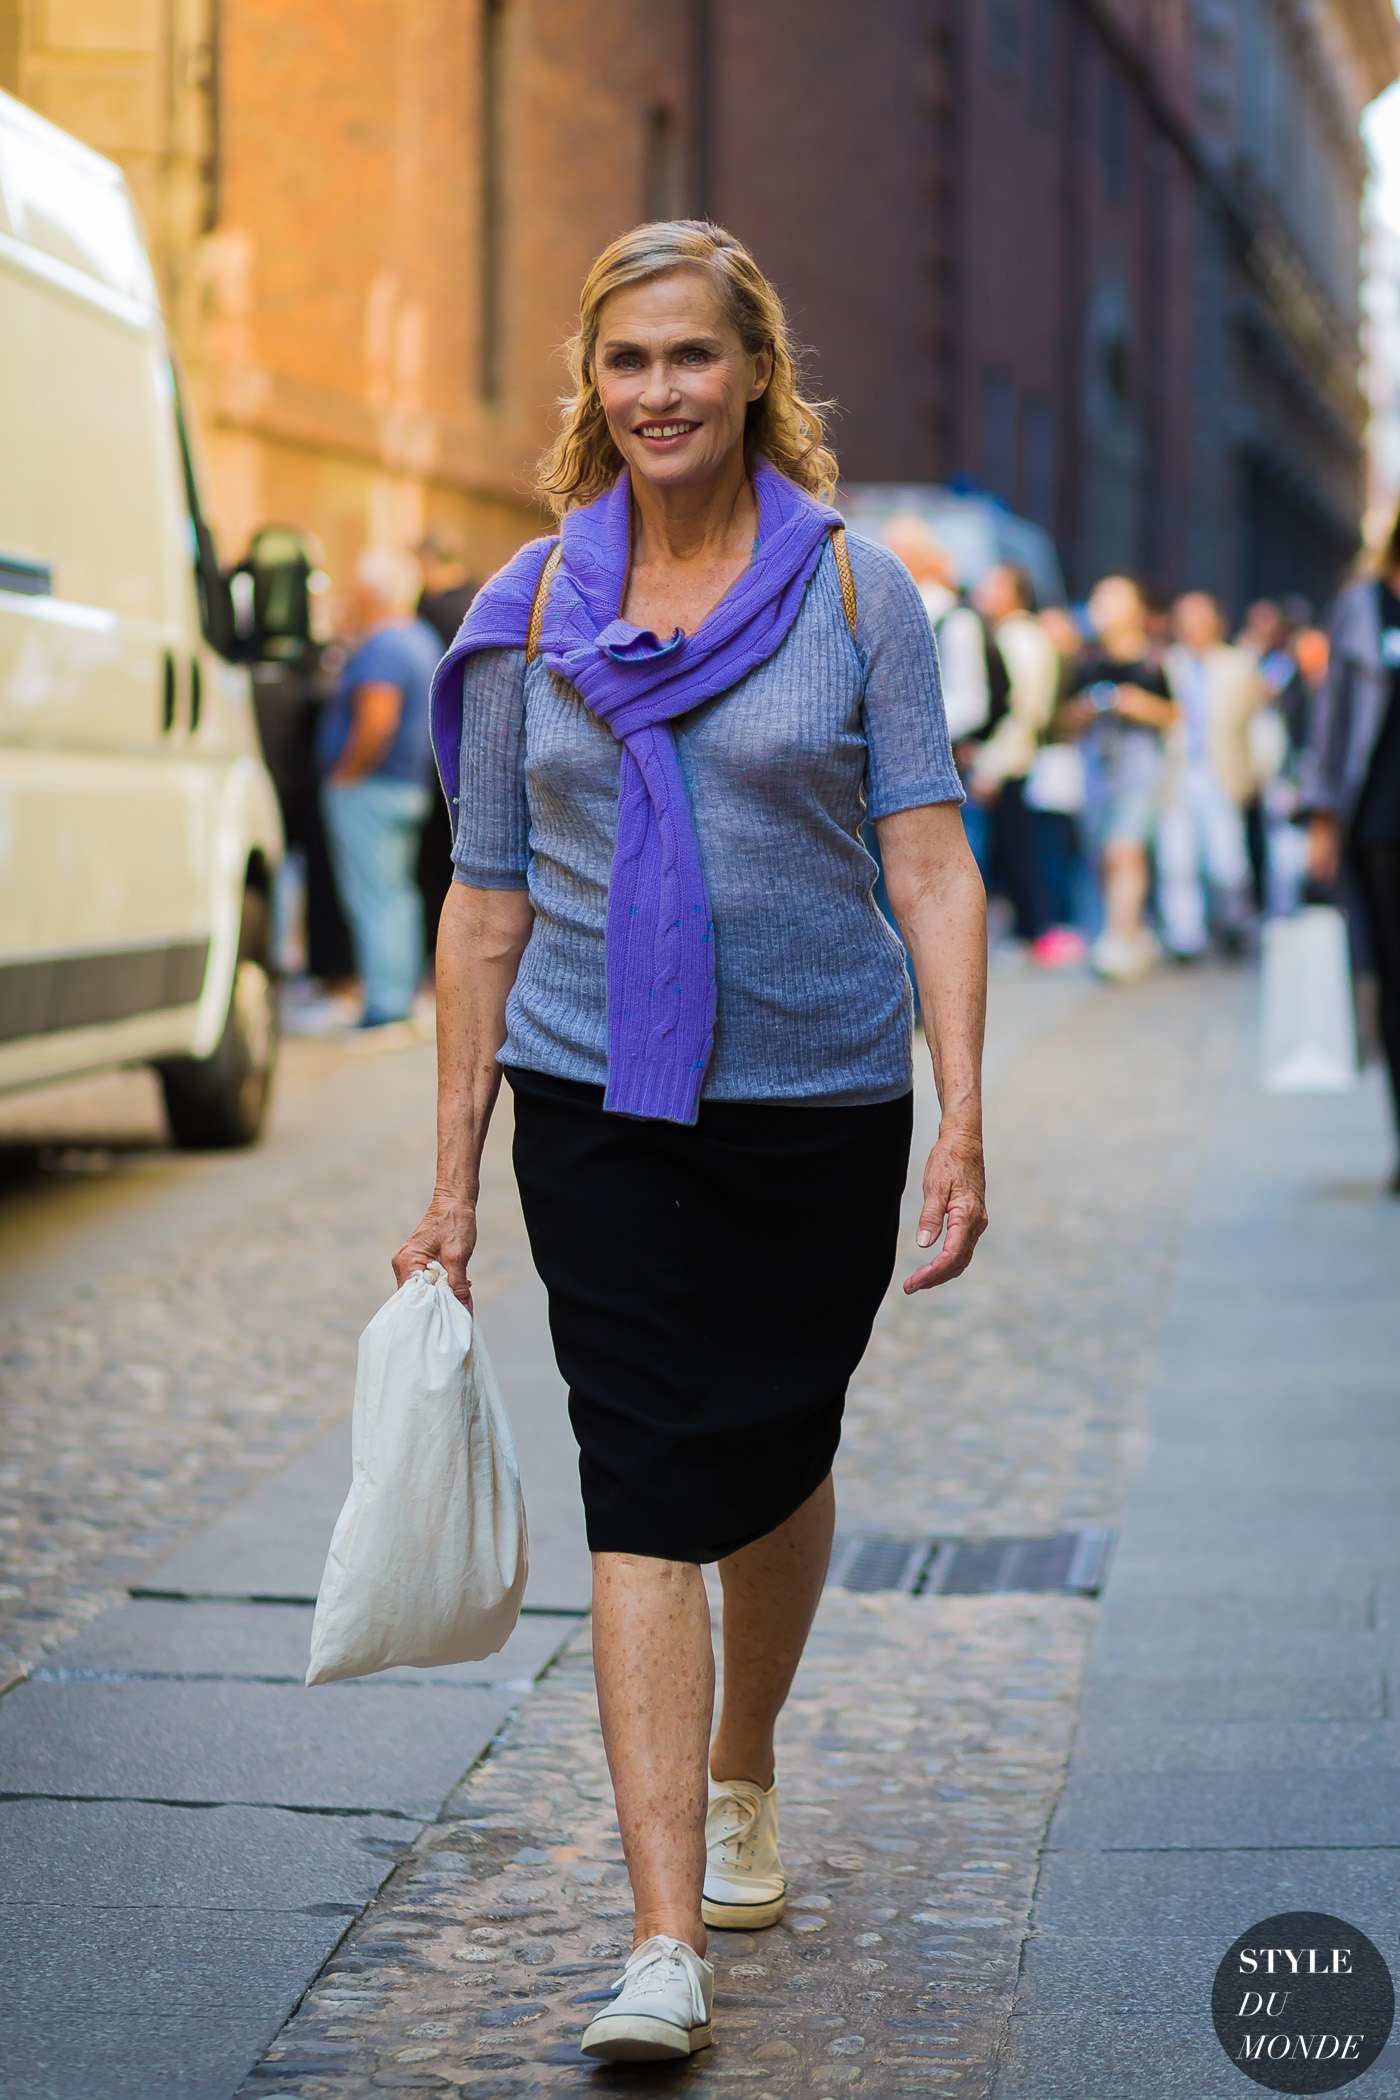 lauren-hutton-by-styledumonde-street-style-fashion-photography